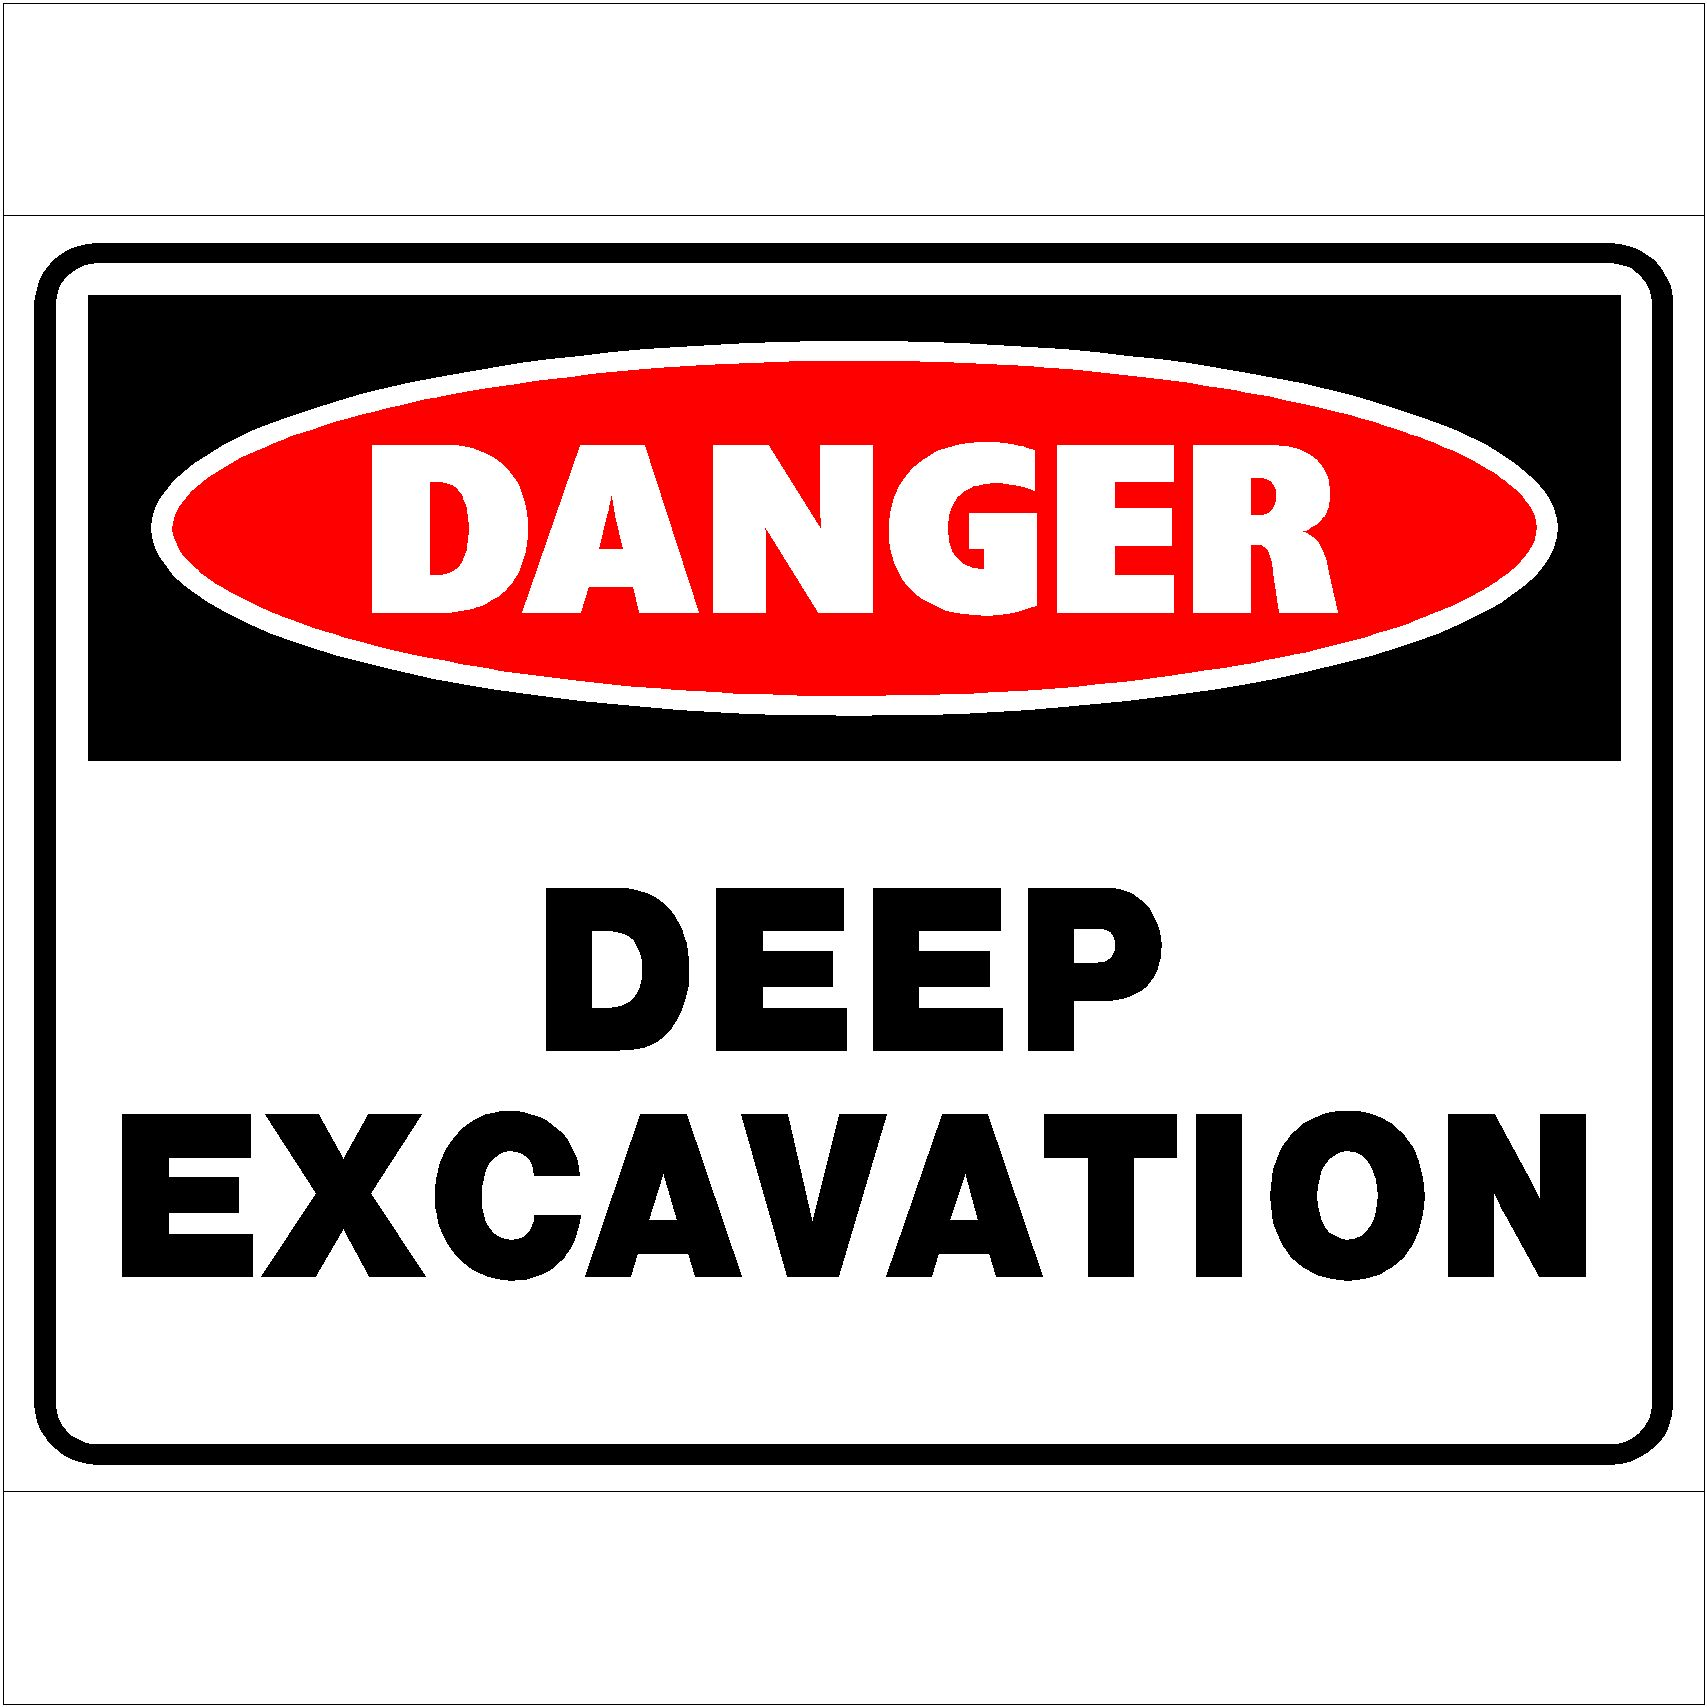 Danger Deep Excavation